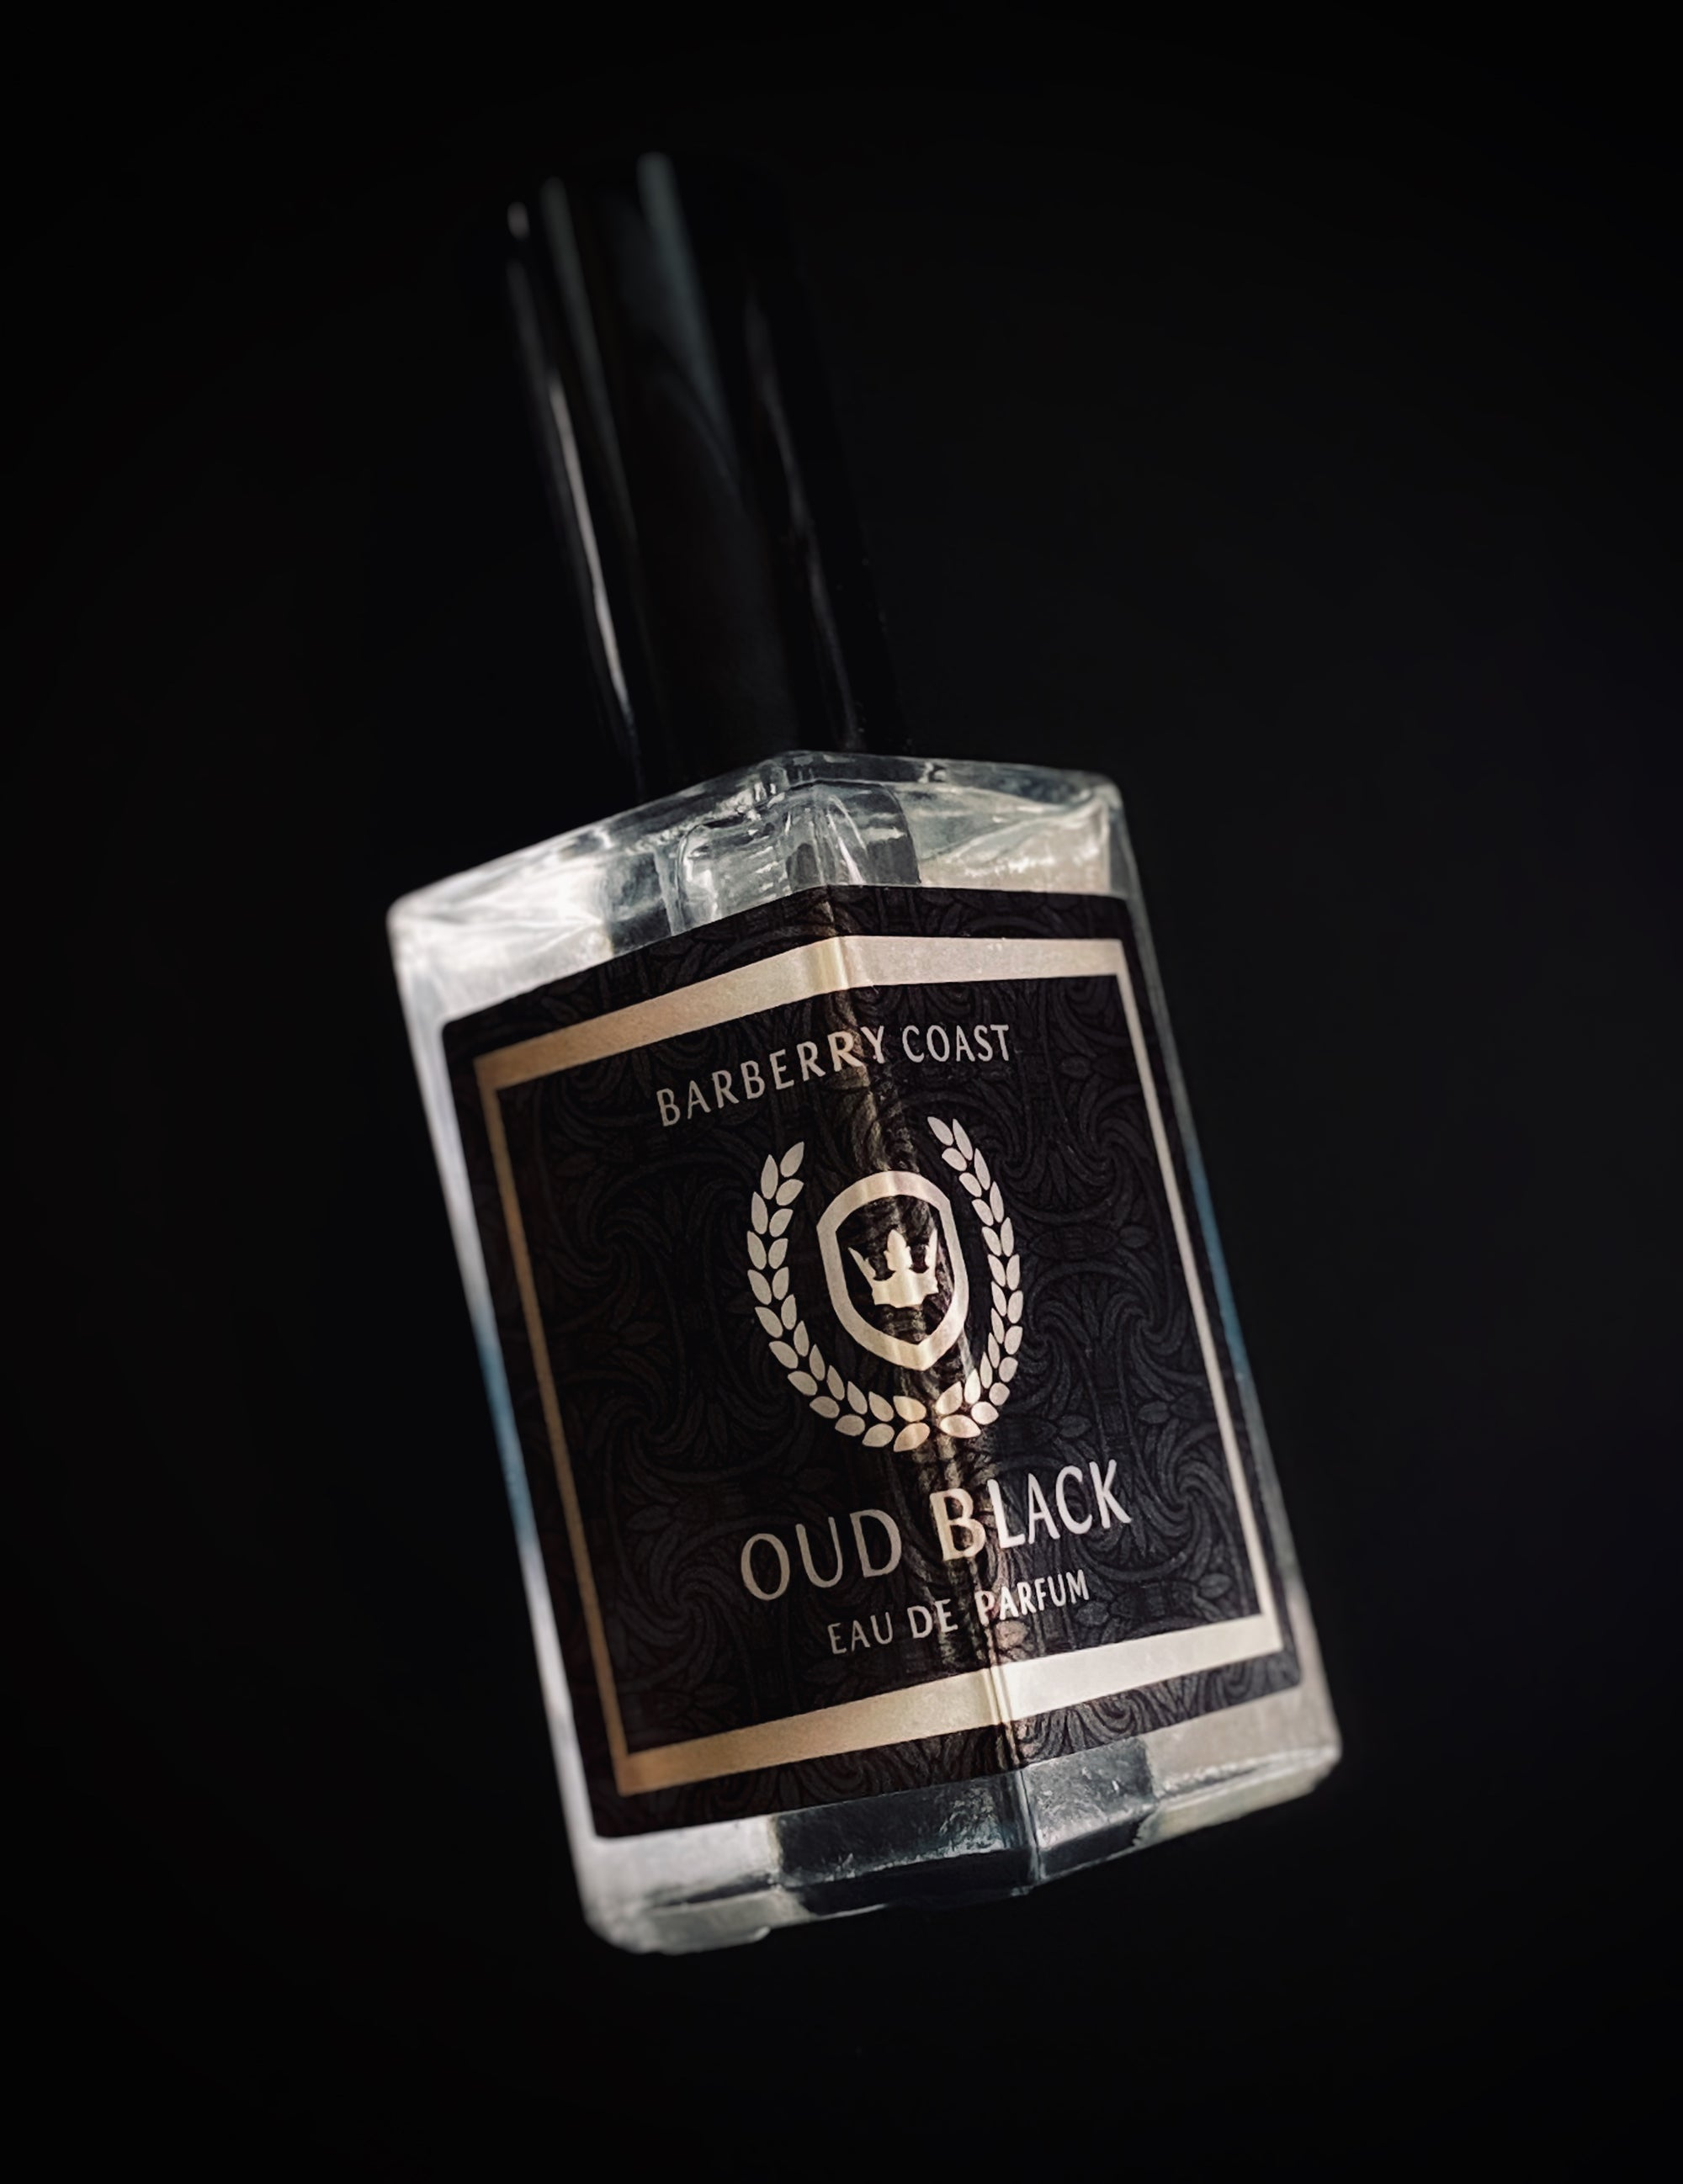 Oud Black EdP Cologne - Special Limited Edition